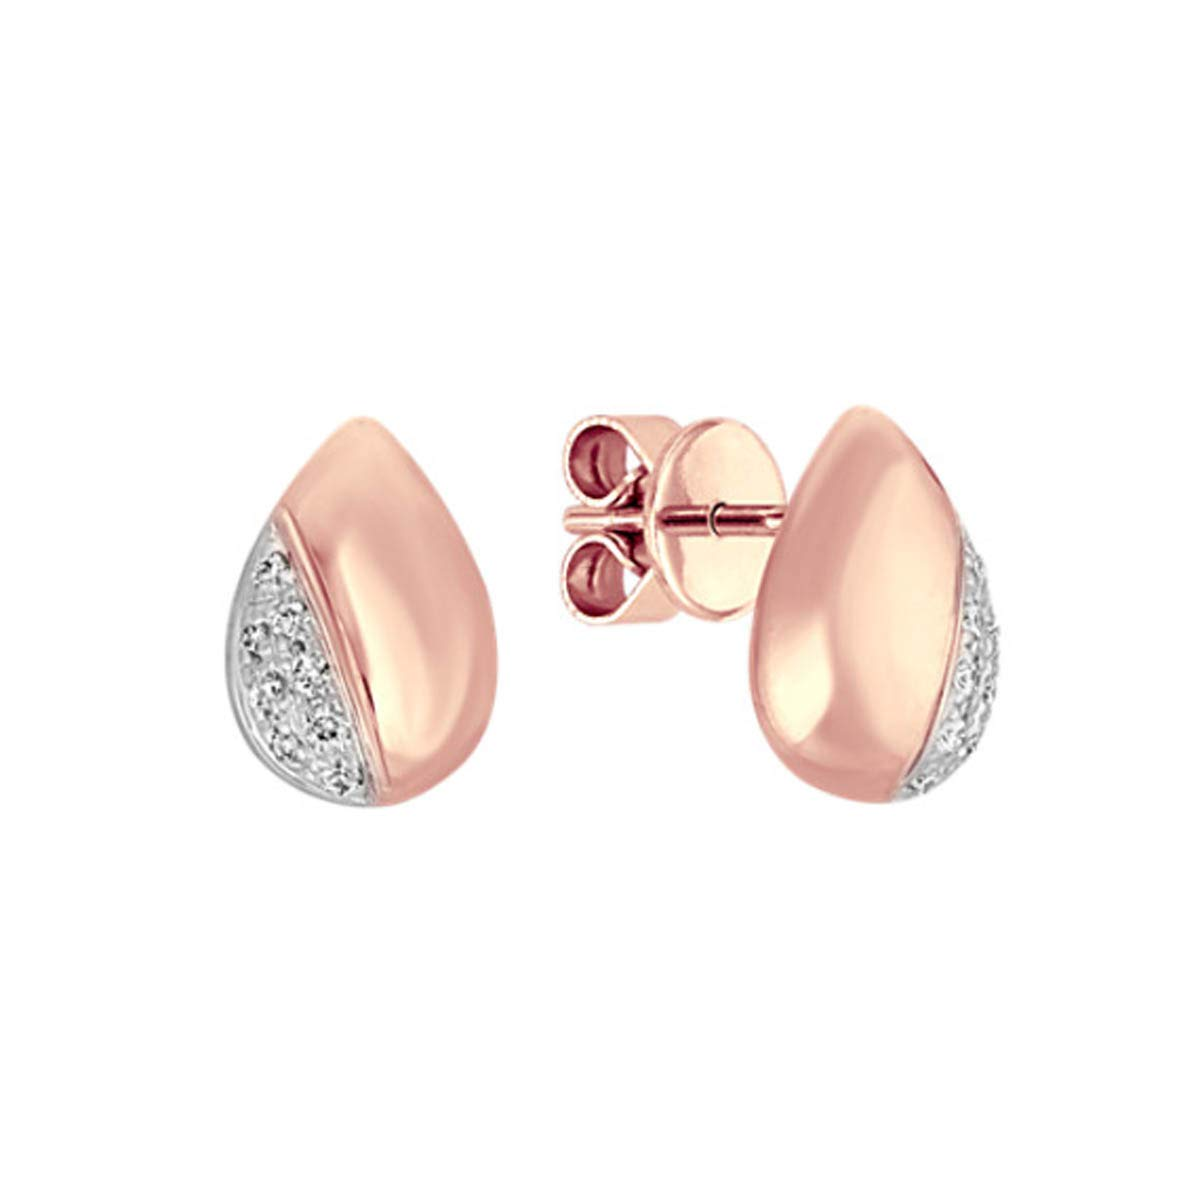 0.15 TCW Round Cut White Simulated Diamond Solid 10k Rose Gold Stud Earrings